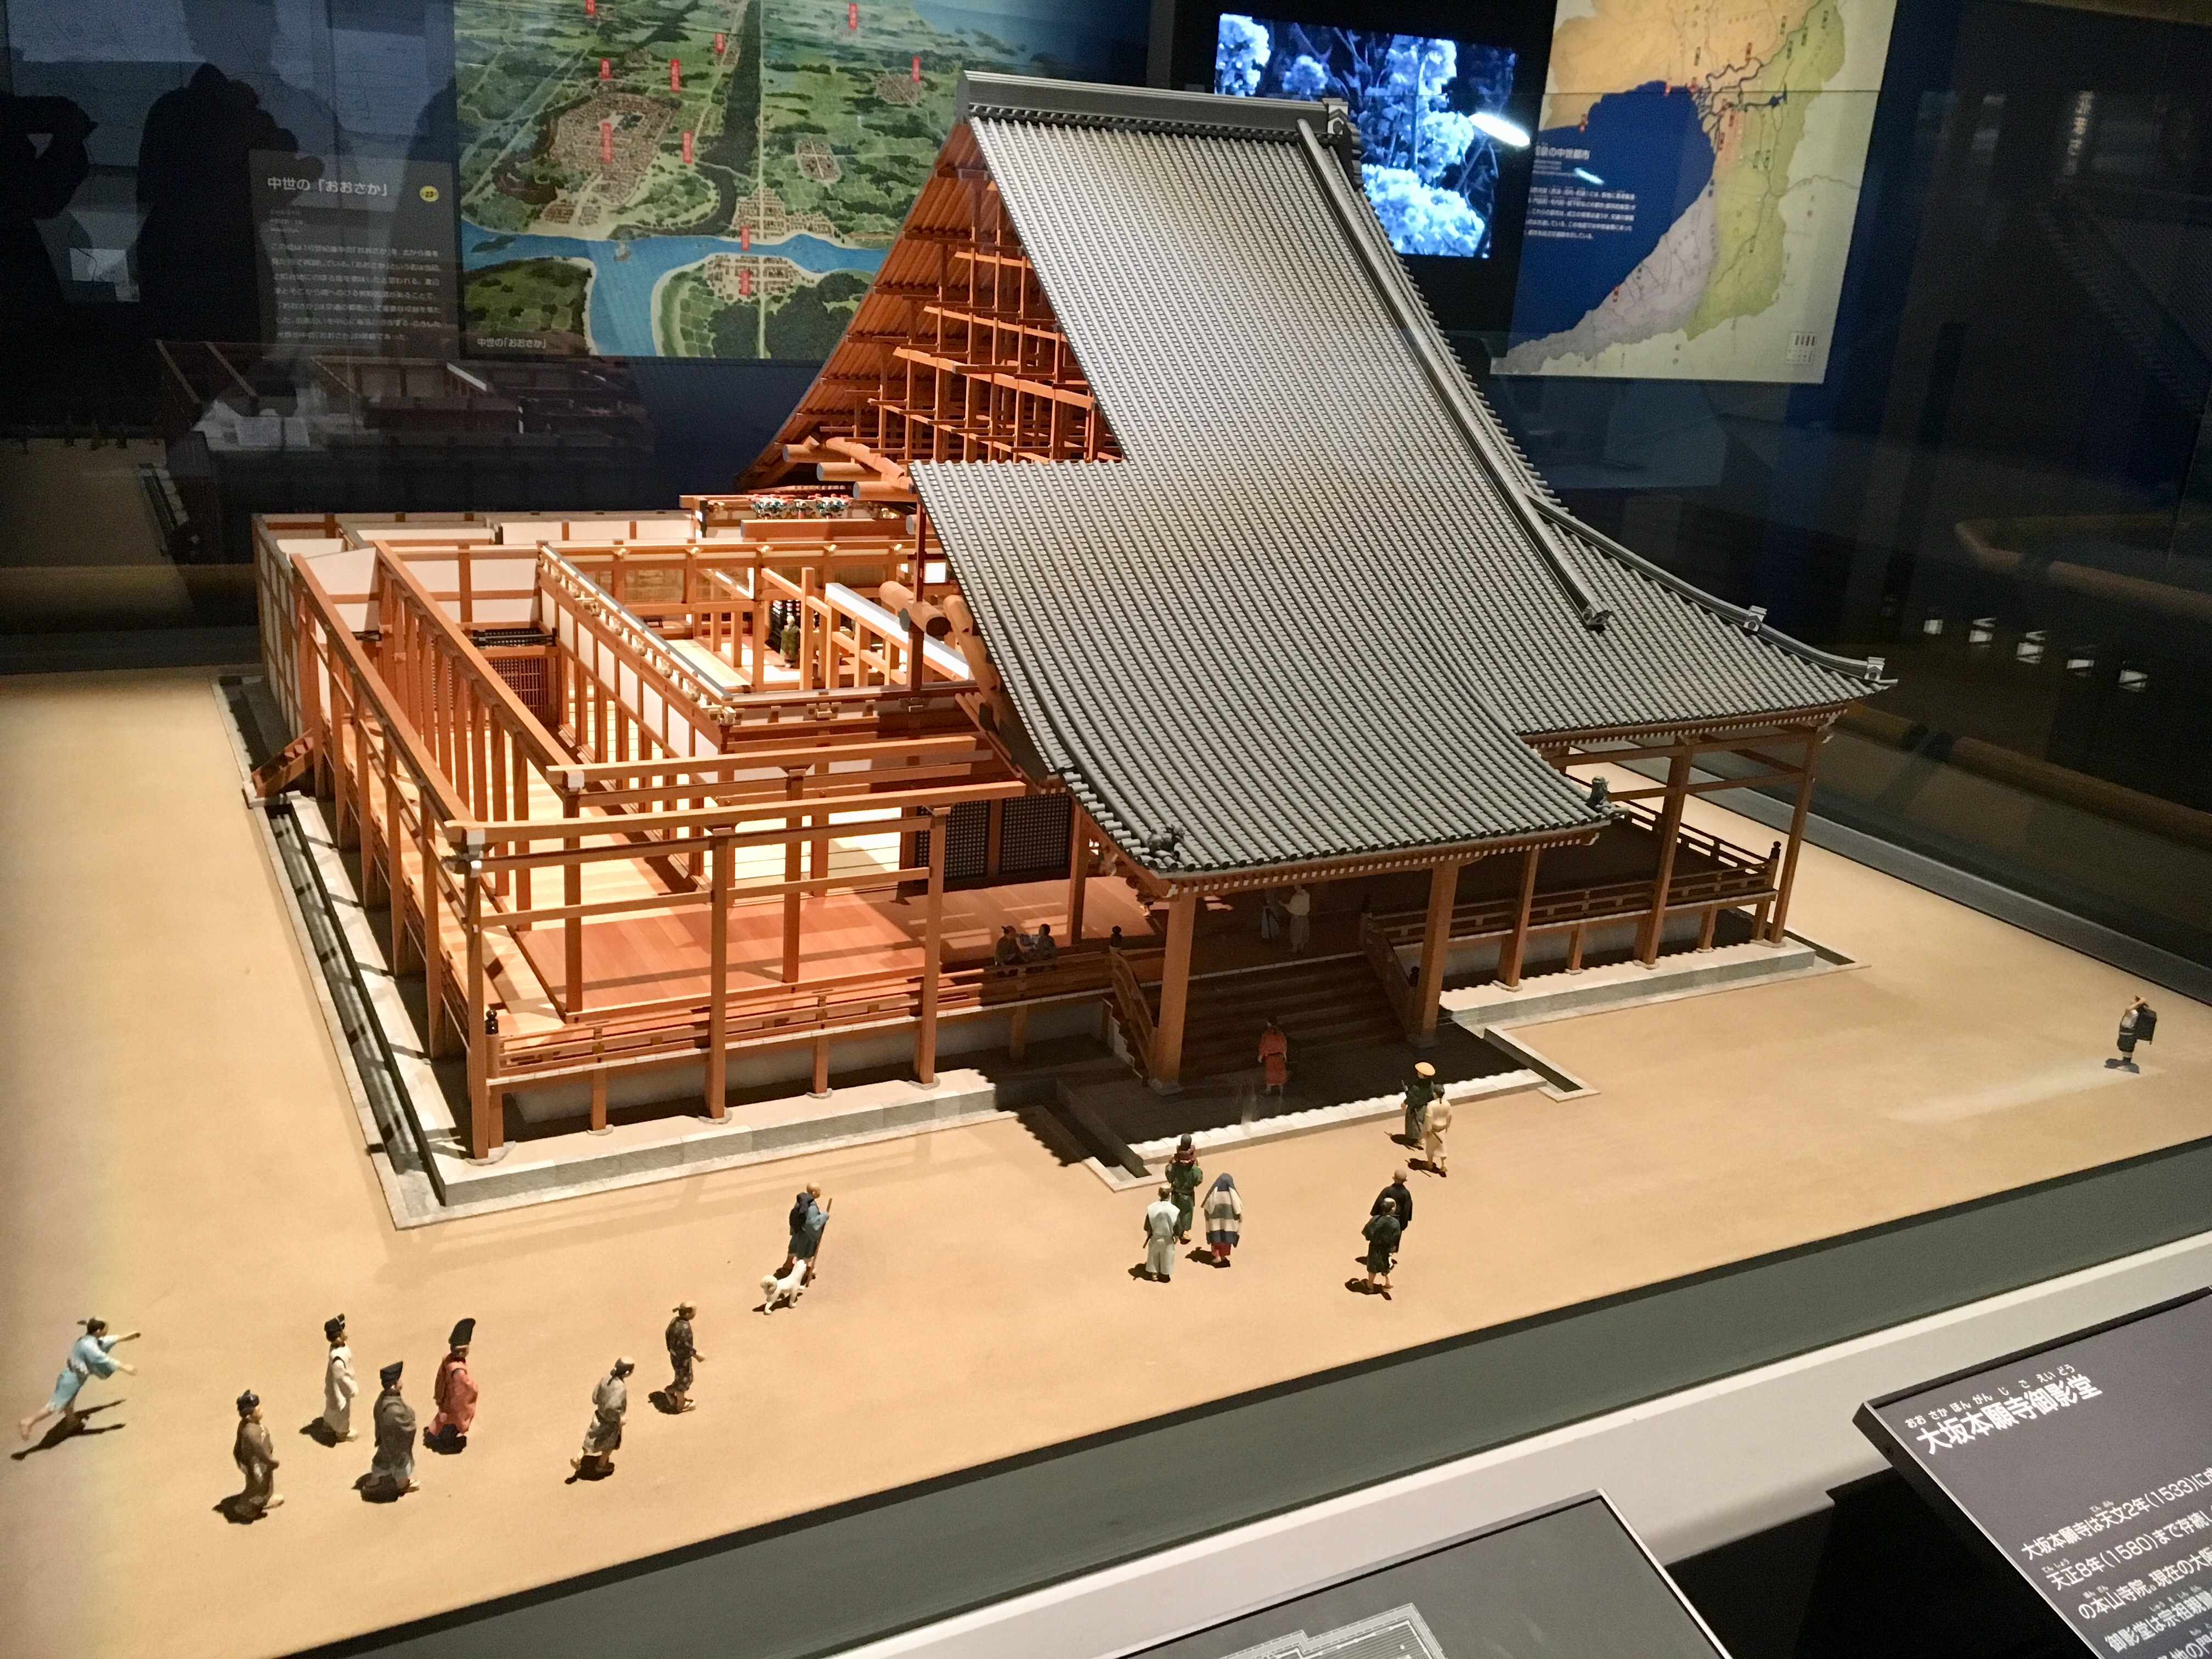 accurate scale model of the the Ishiyama hondan-ji temple in old Osaka